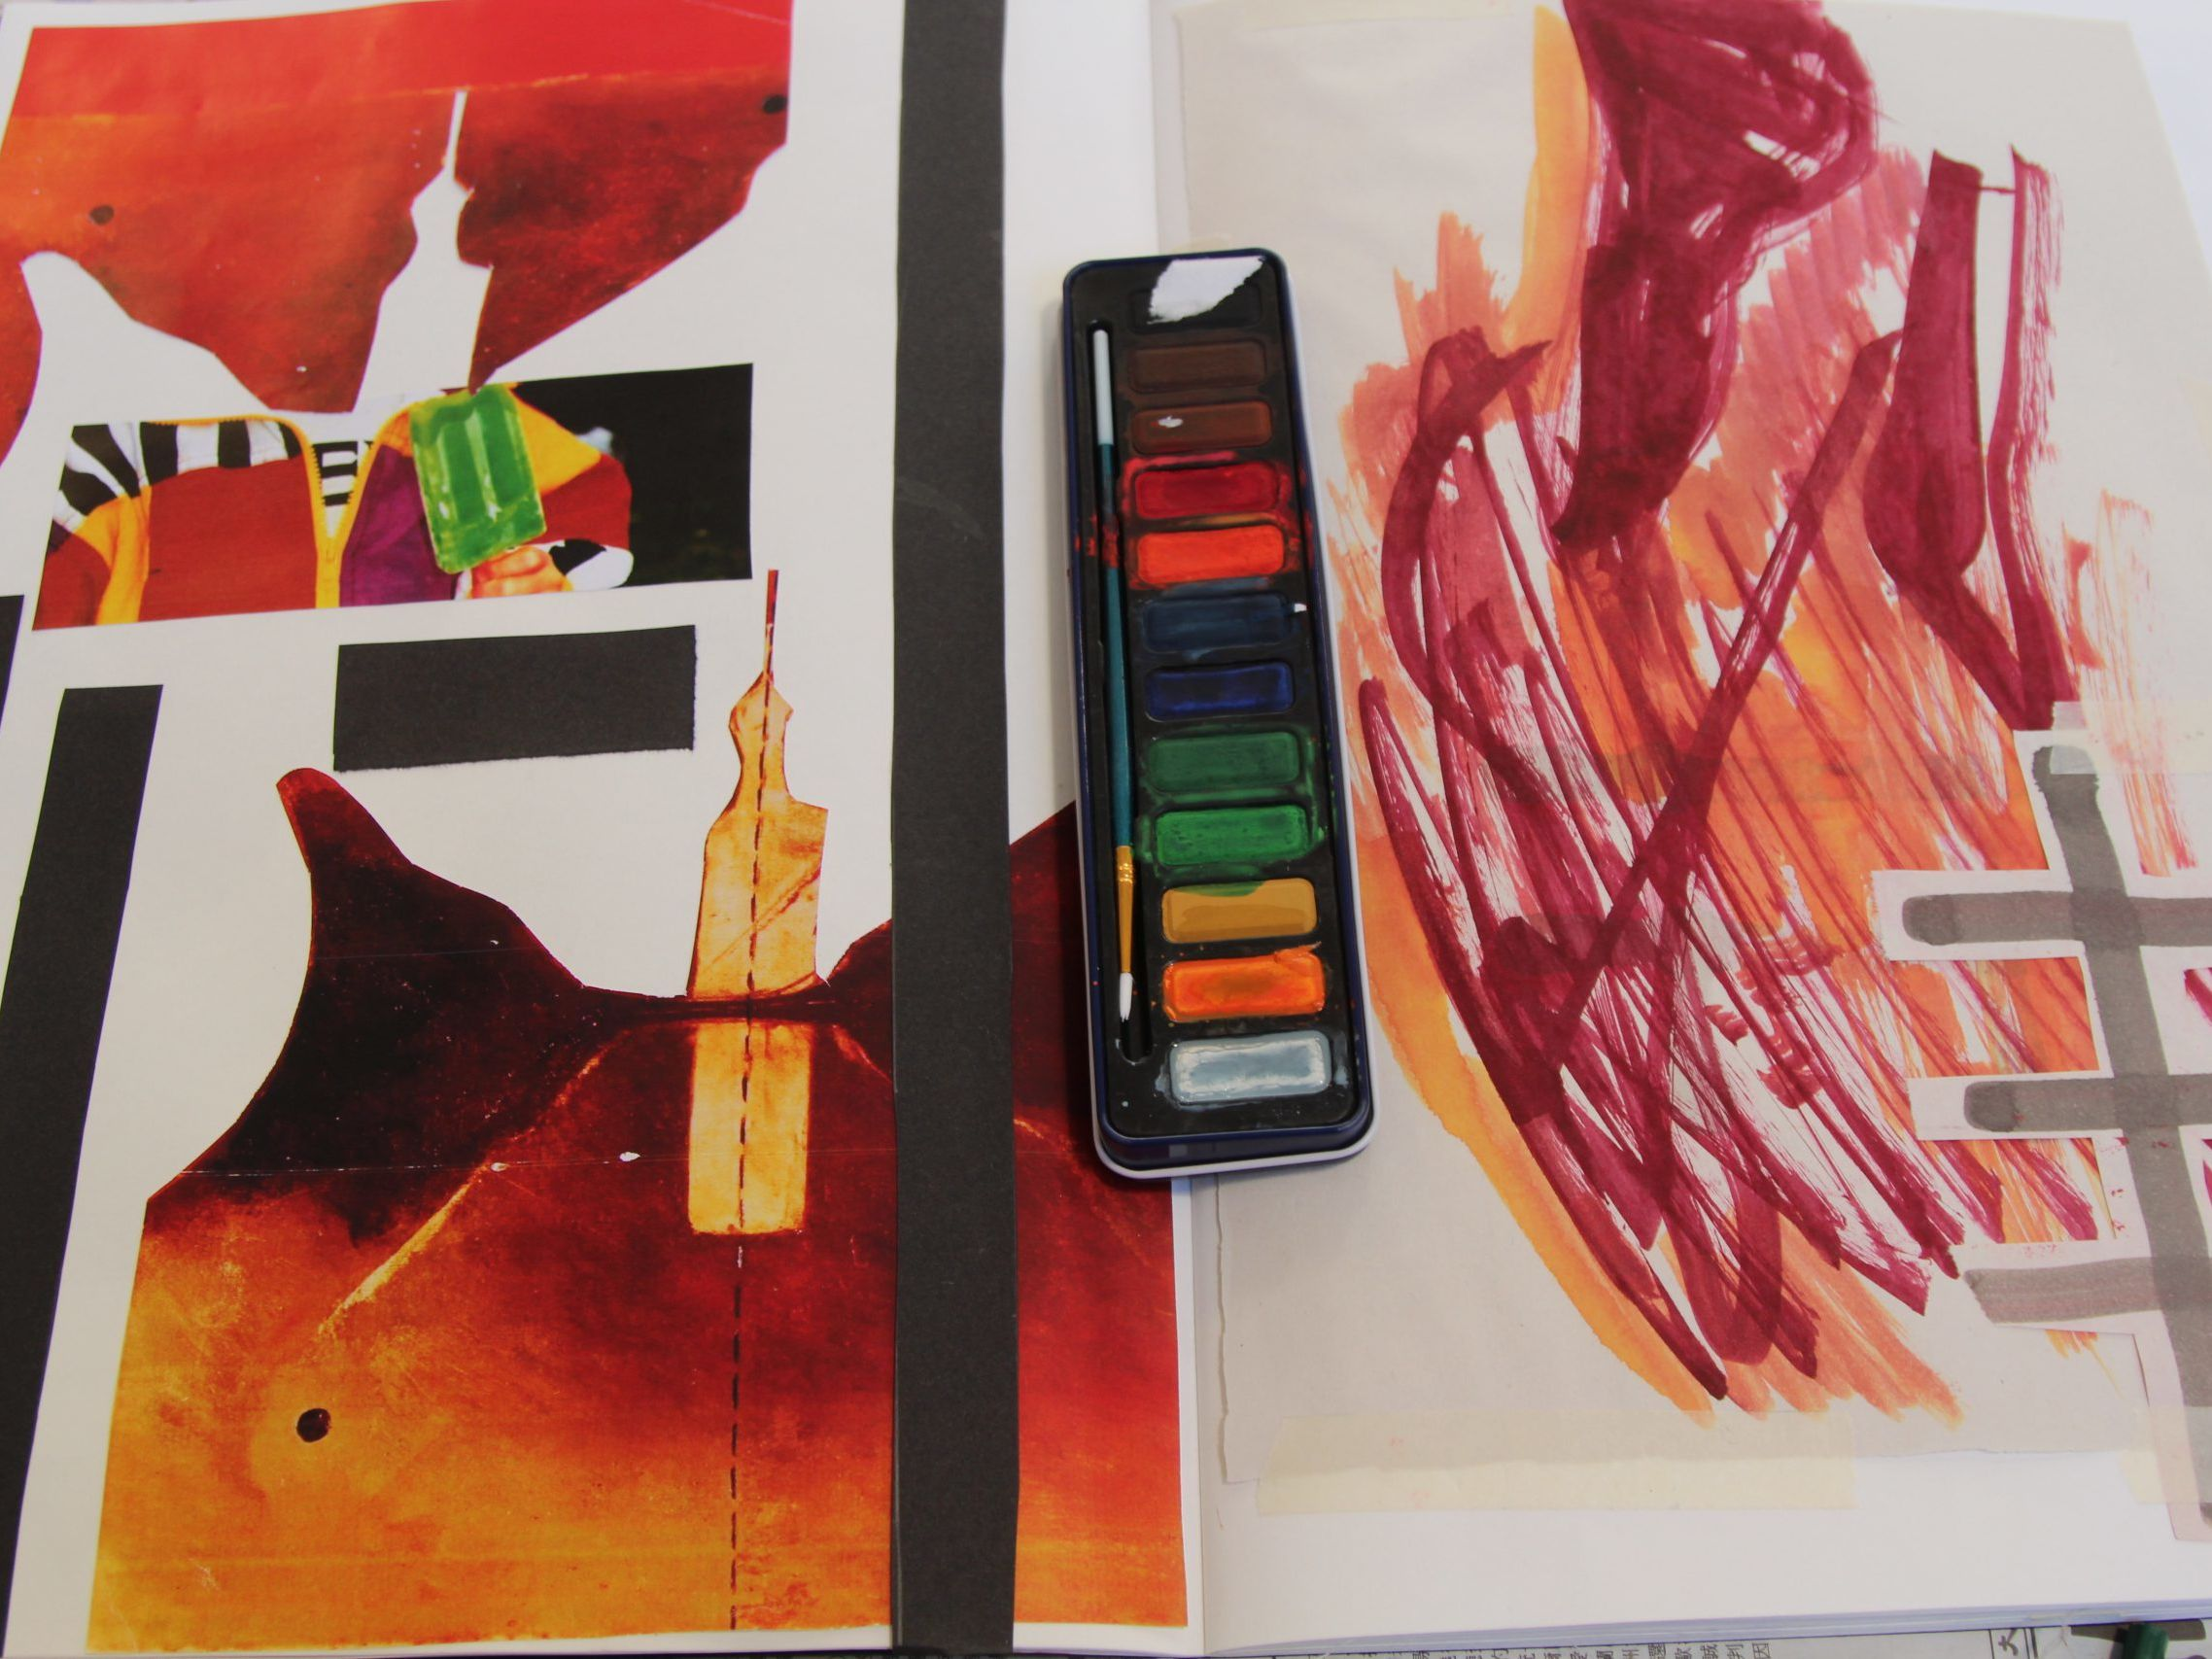 Collage and mark marking in orange and red hues with paint palette central to image